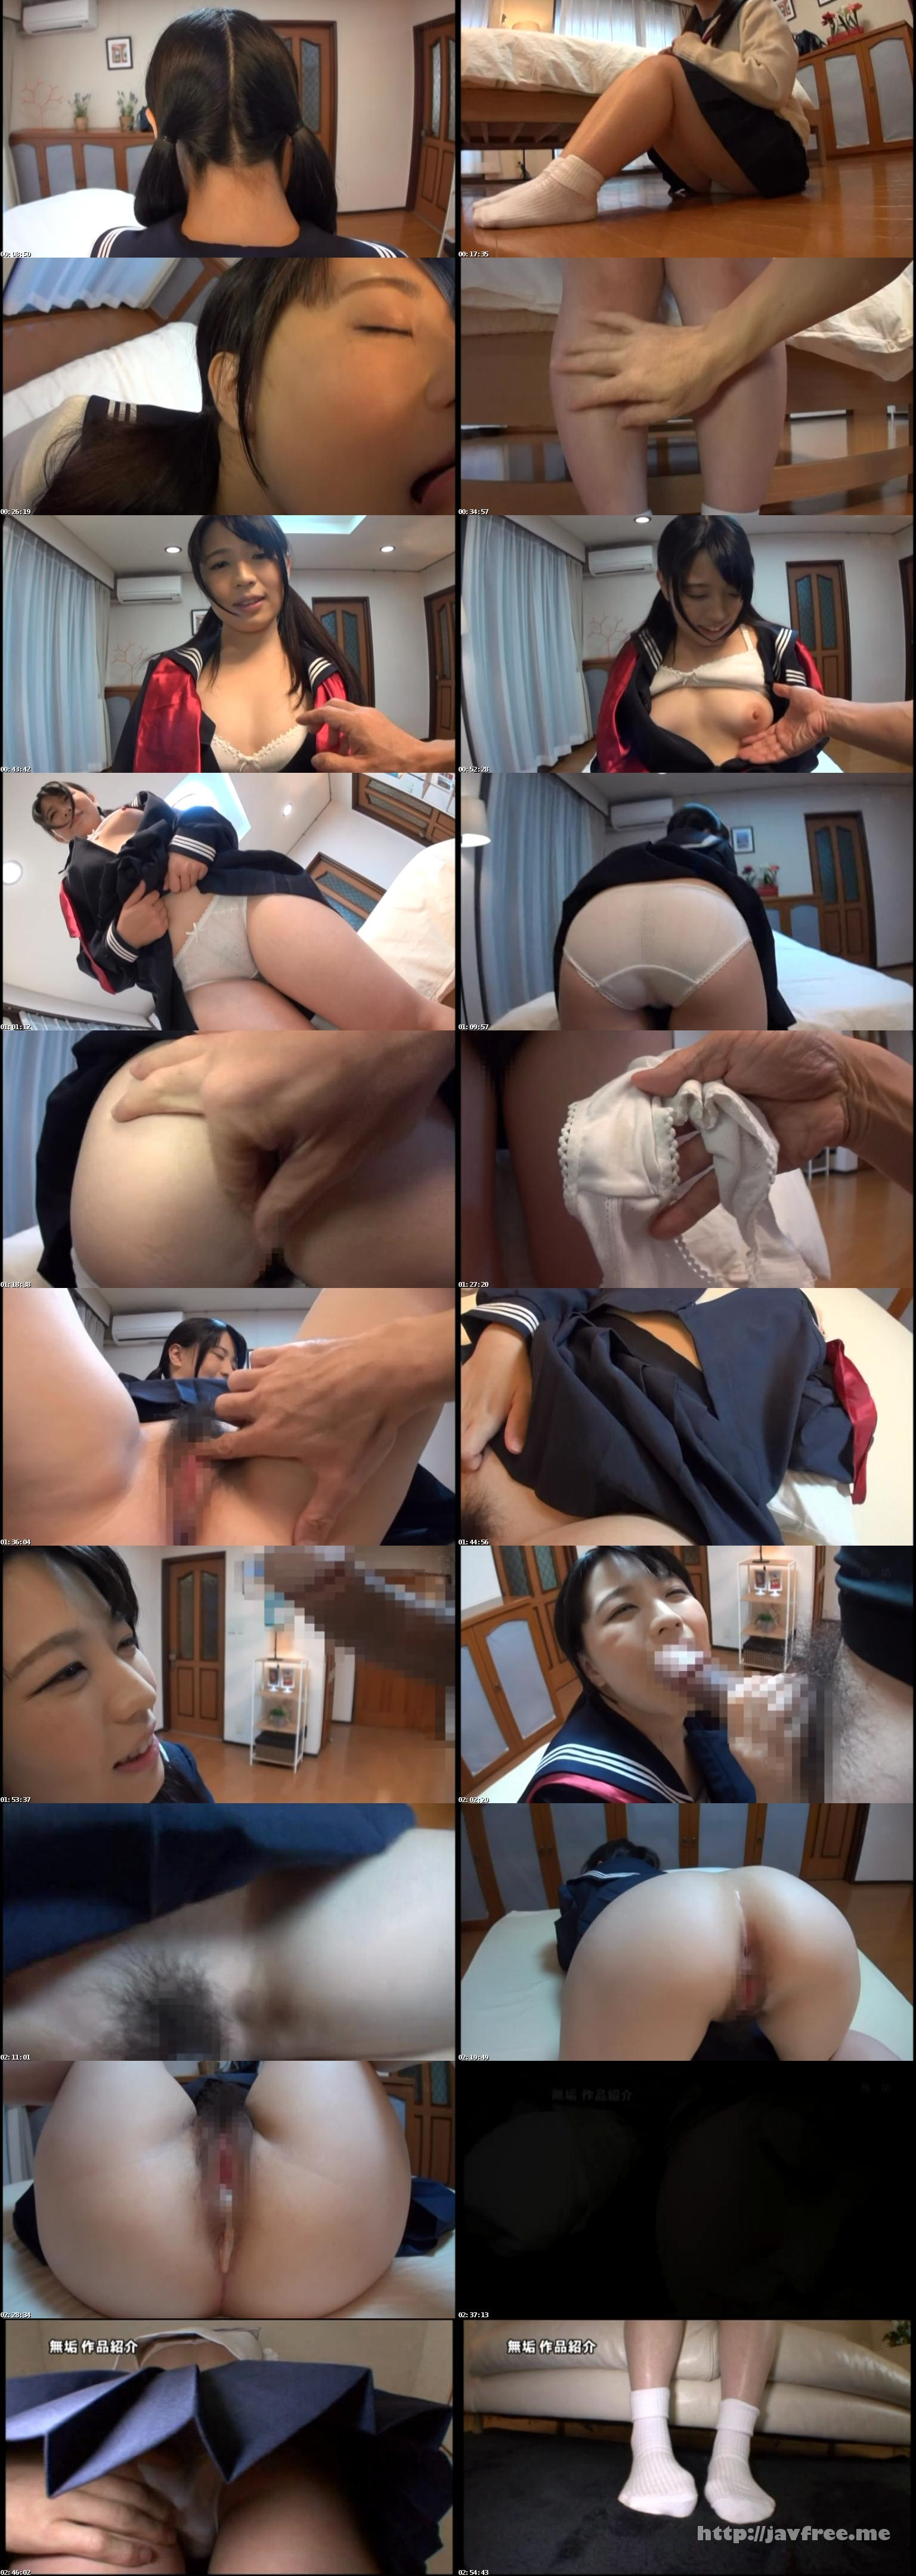 [MUKD-330] 処女 最後の日 ゆきえ - image MUKD-330 on https://javfree.me